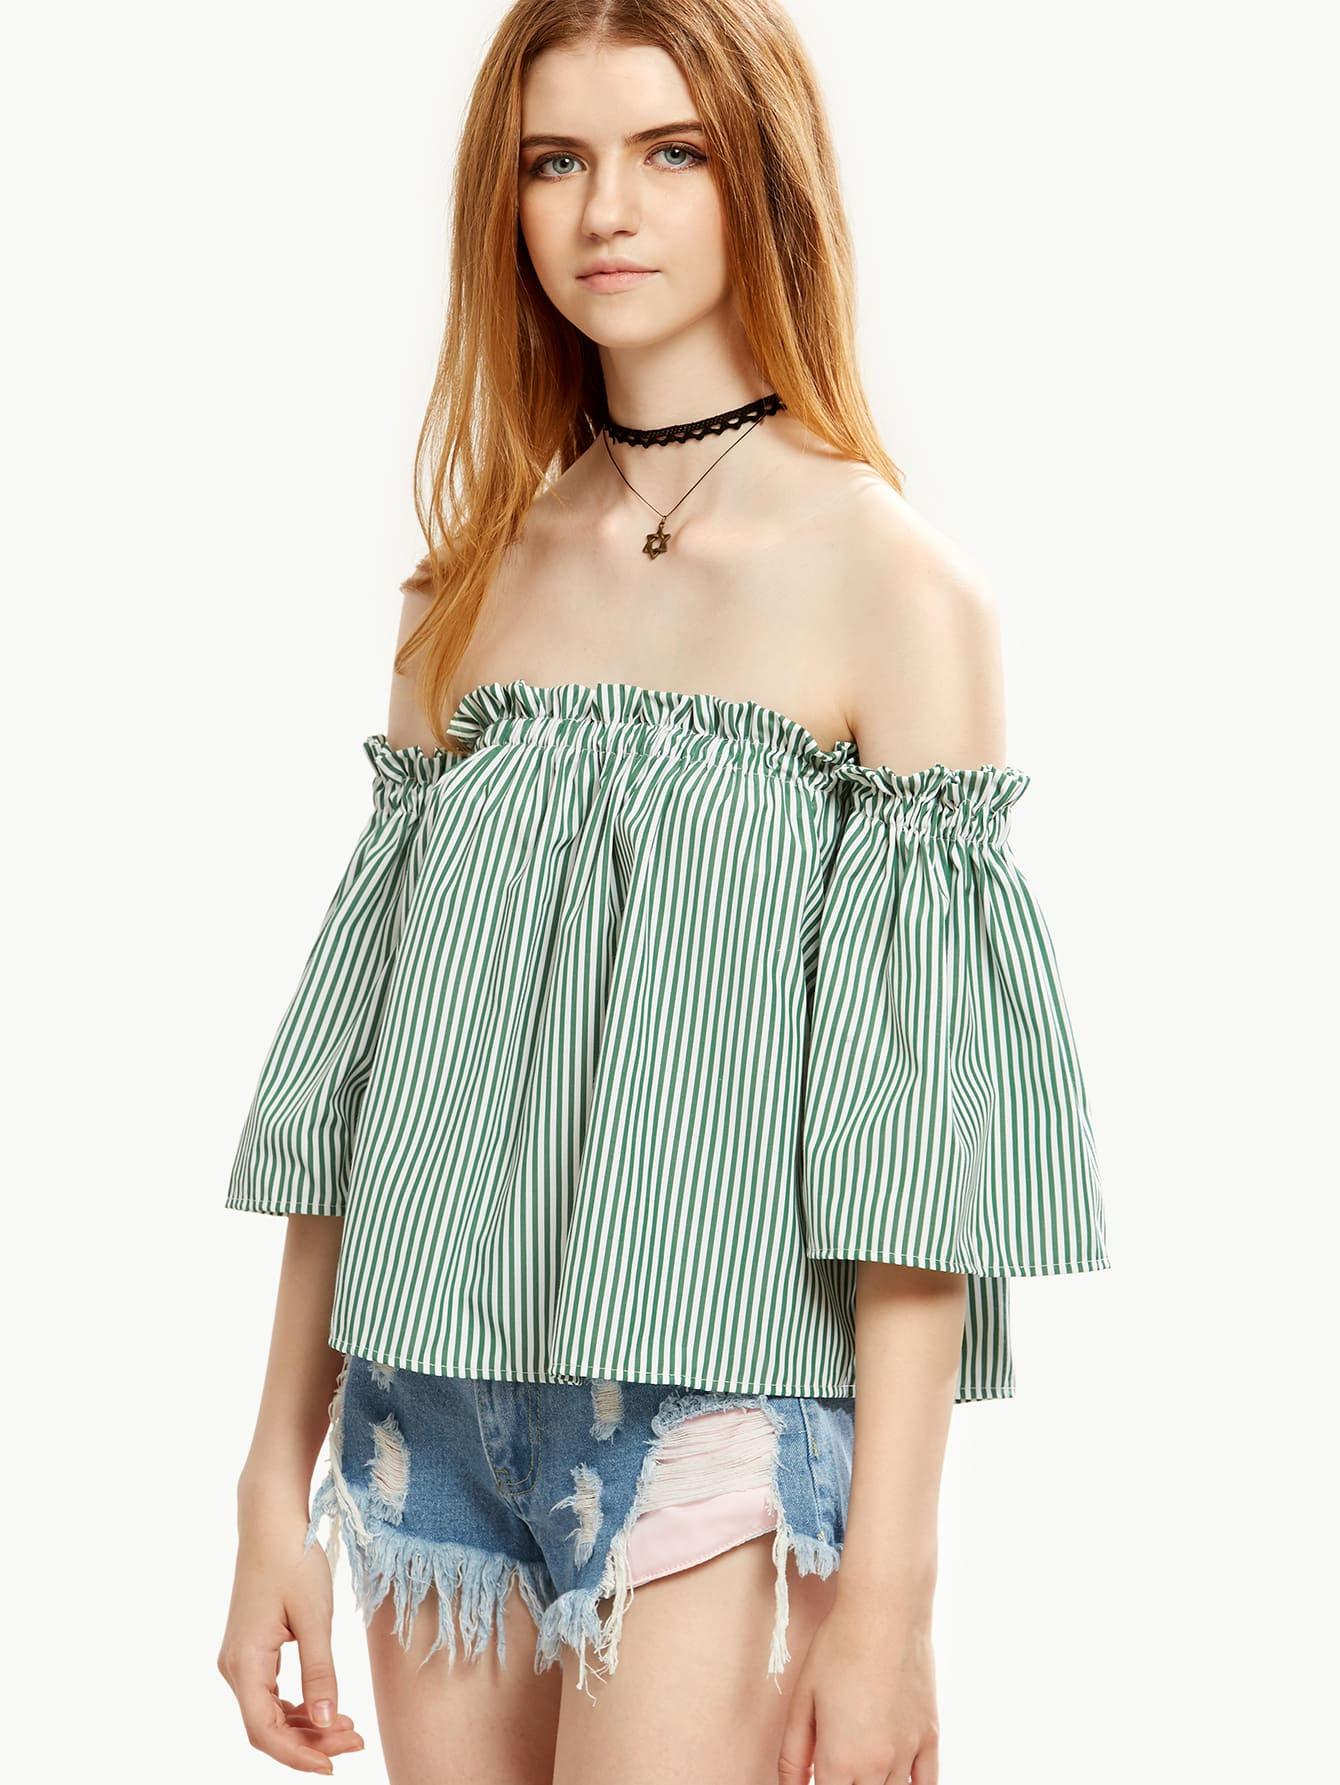 Green Vertical Striped Ruffle Off The Shoulder Top